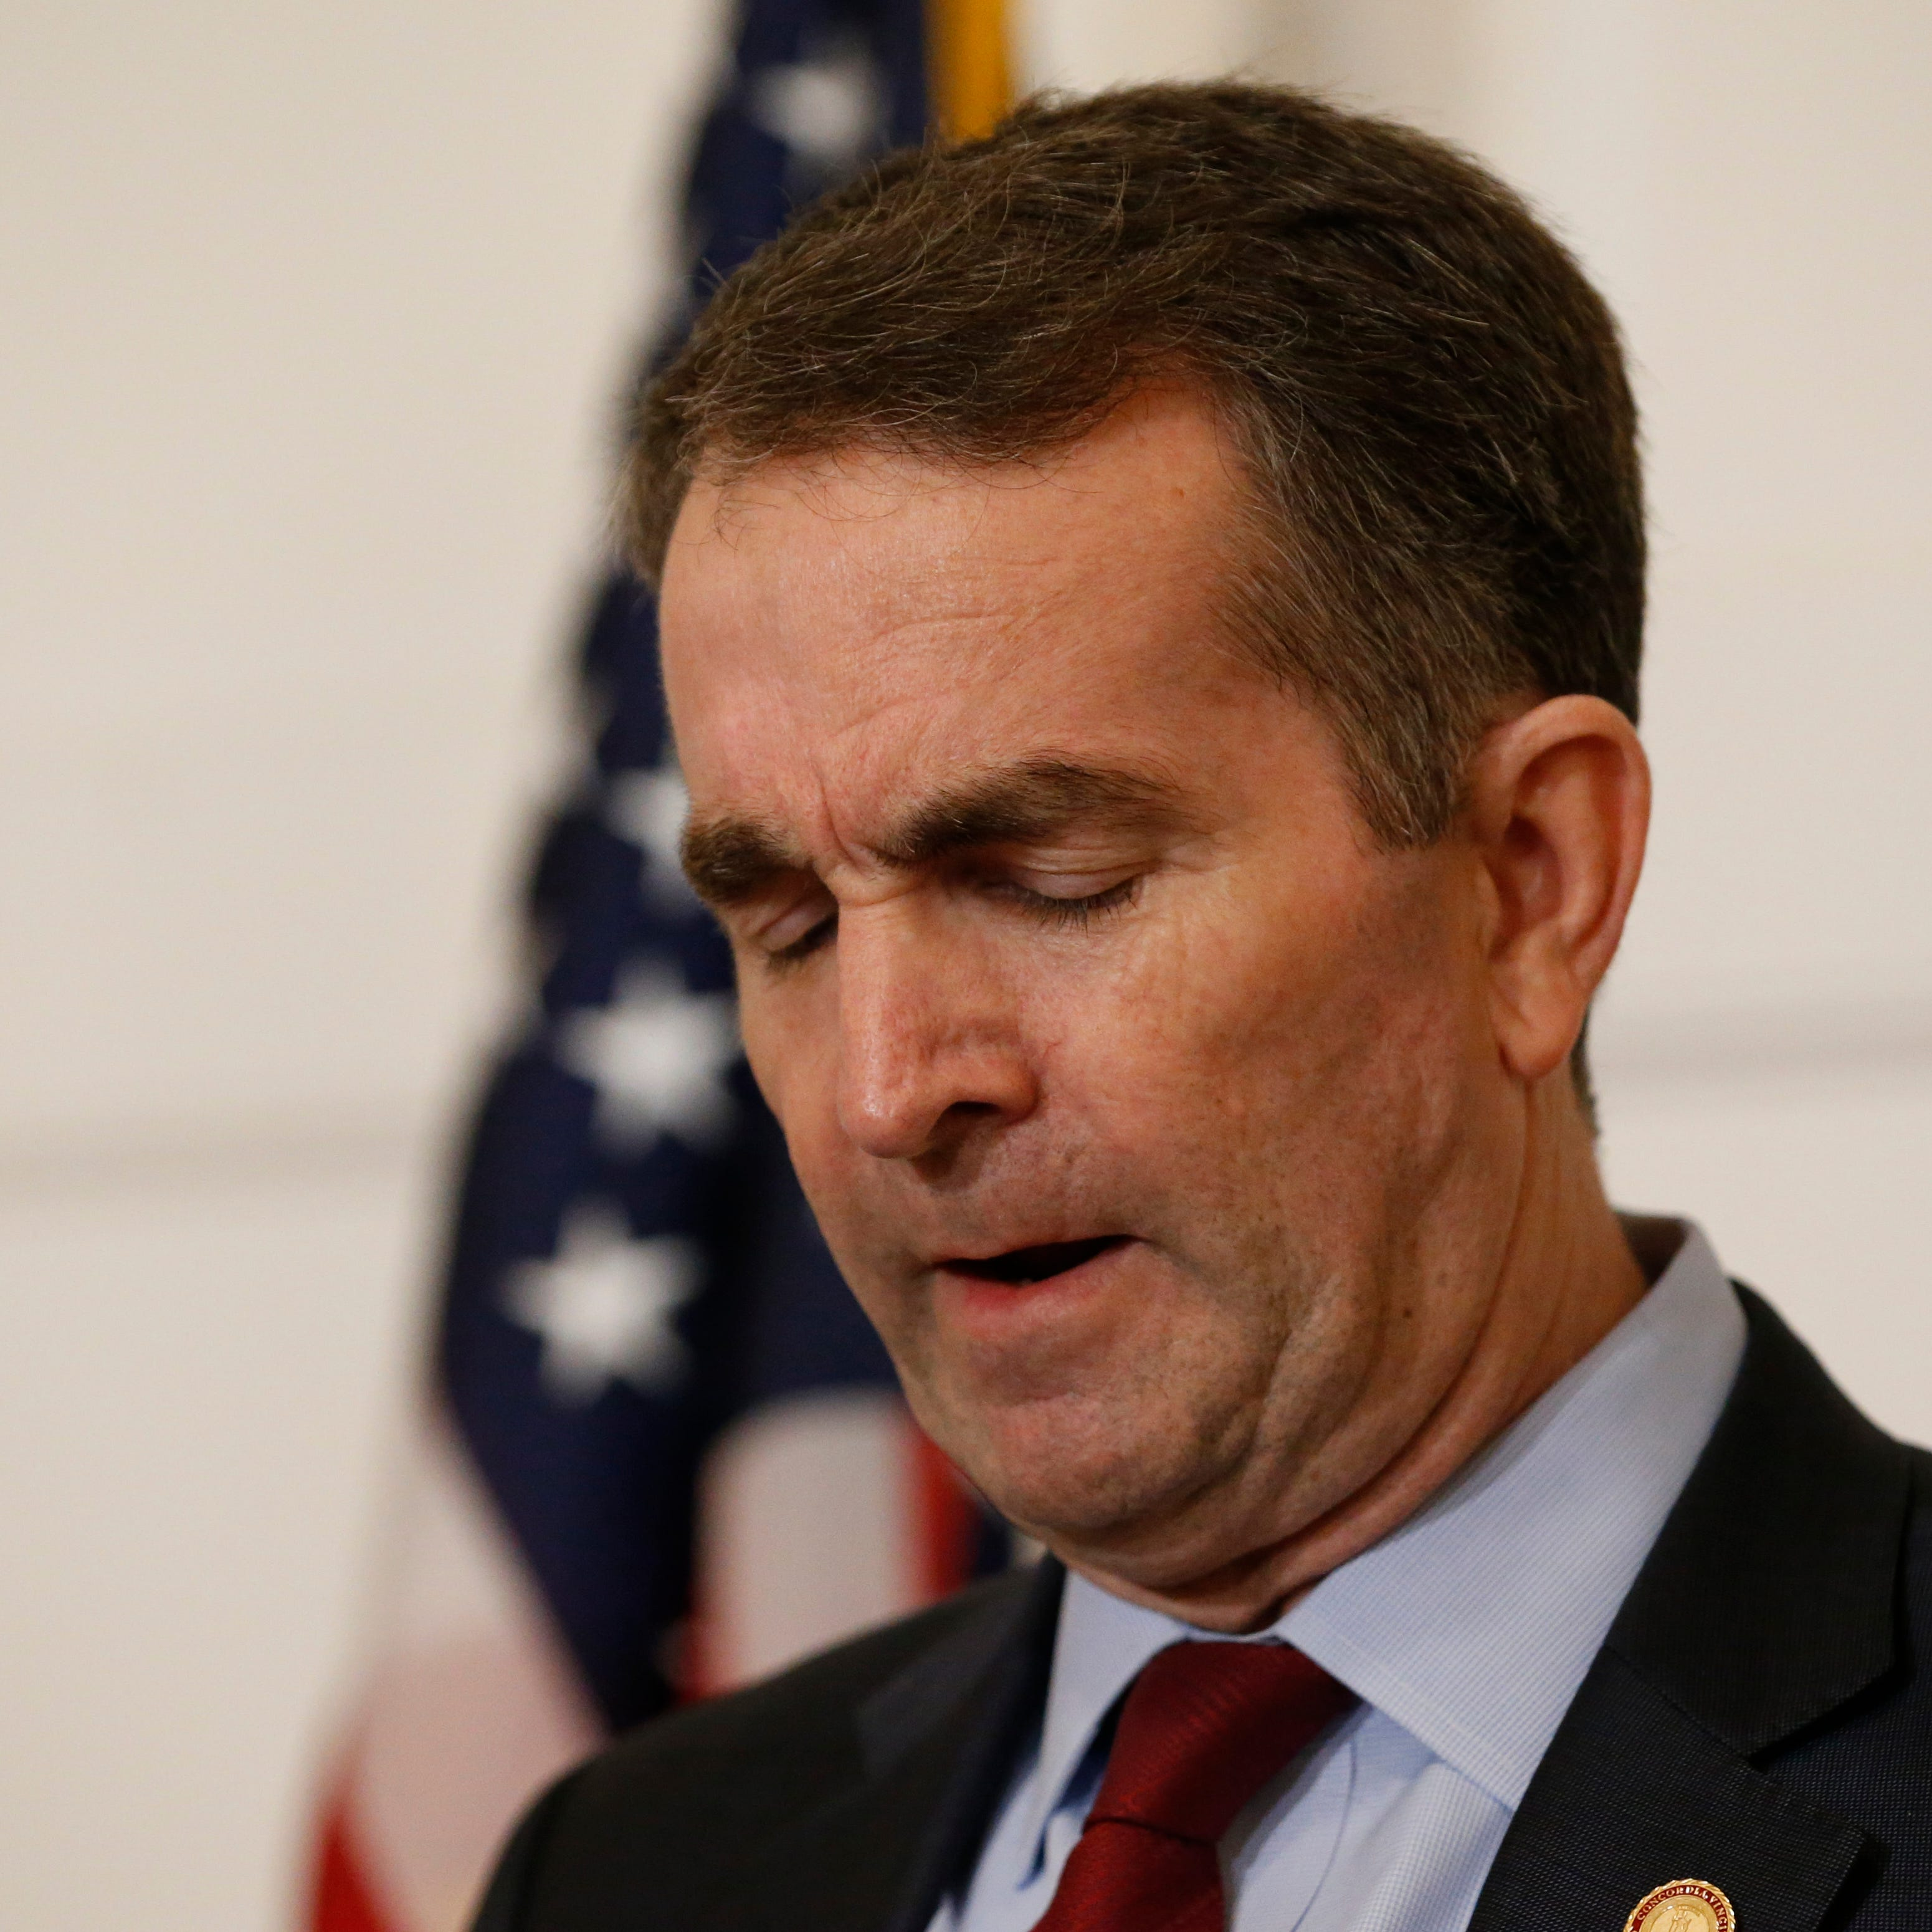 Northam scandal is political hit designed to circumvent democracy, reader says